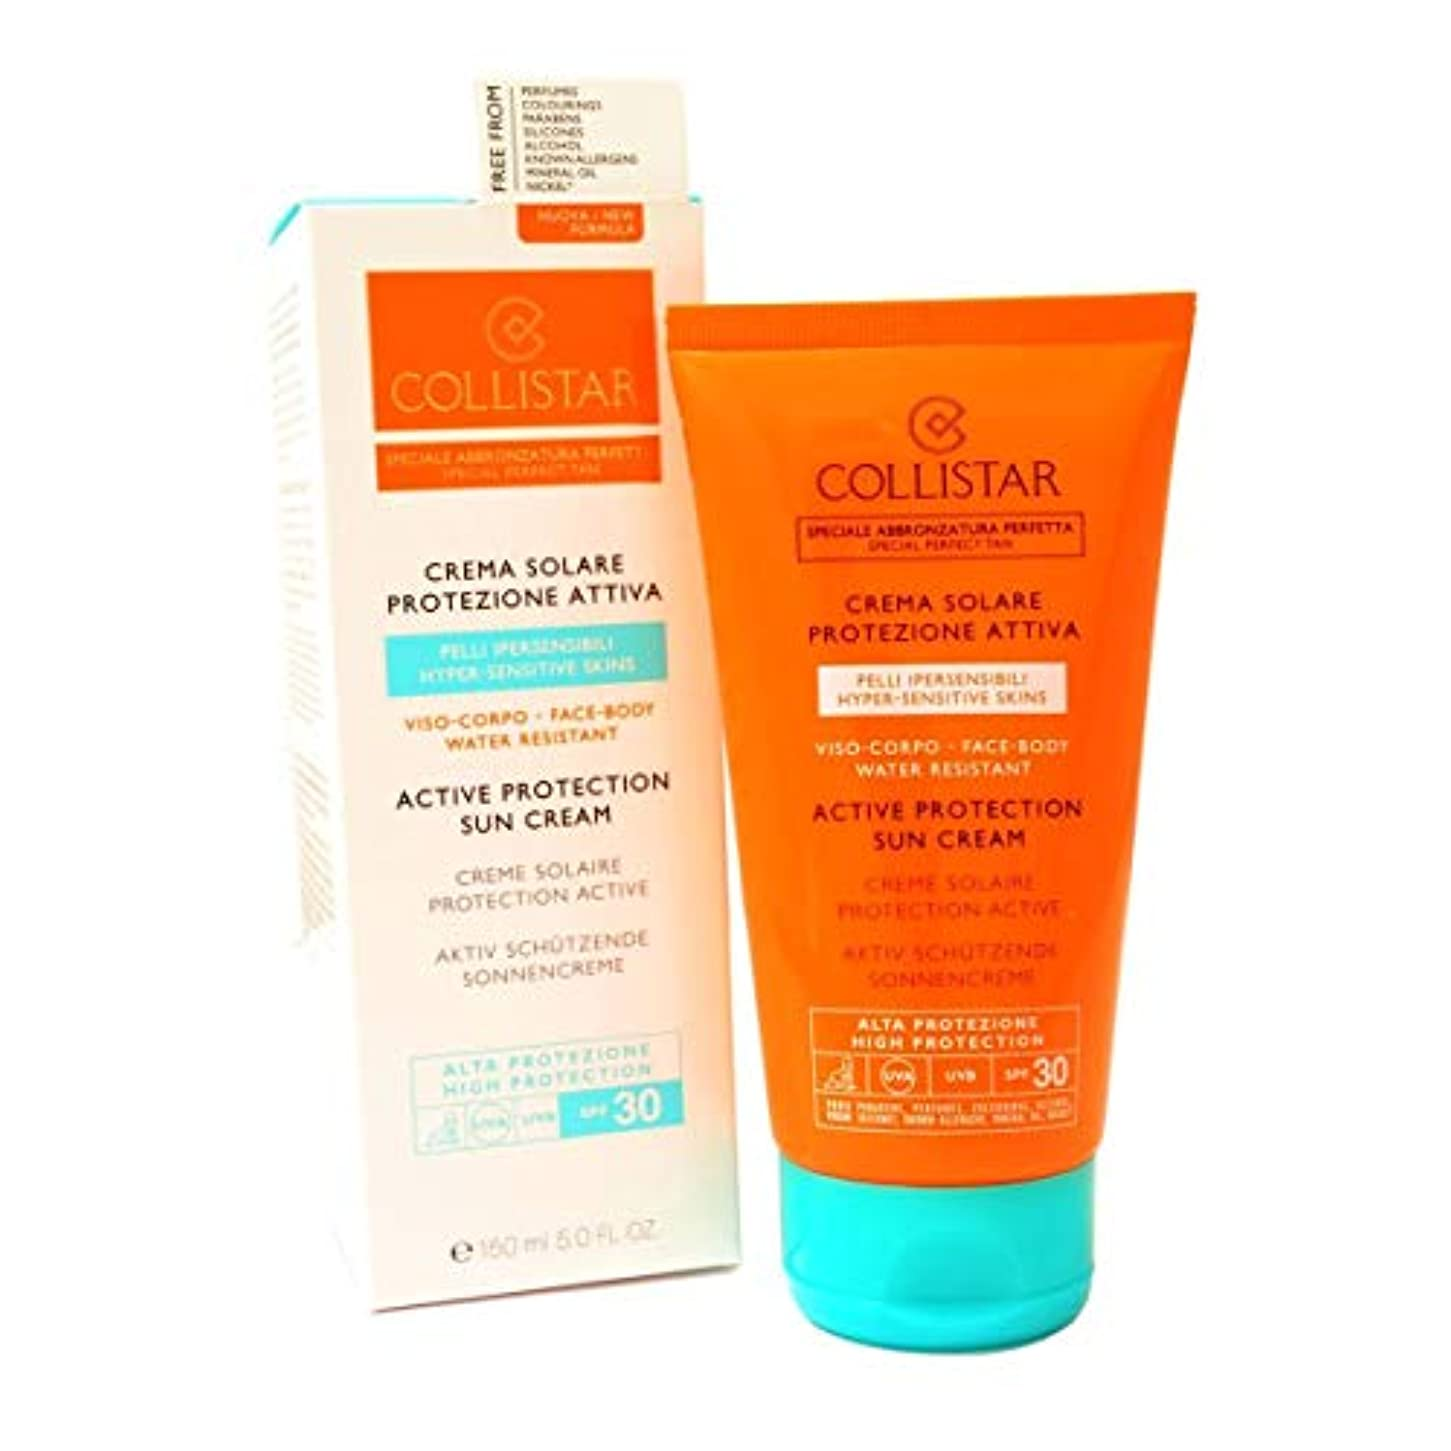 プラットフォームサンプル基礎Collistar Active Protection Sun Cream Spf30 Face And Body 150ml [並行輸入品]